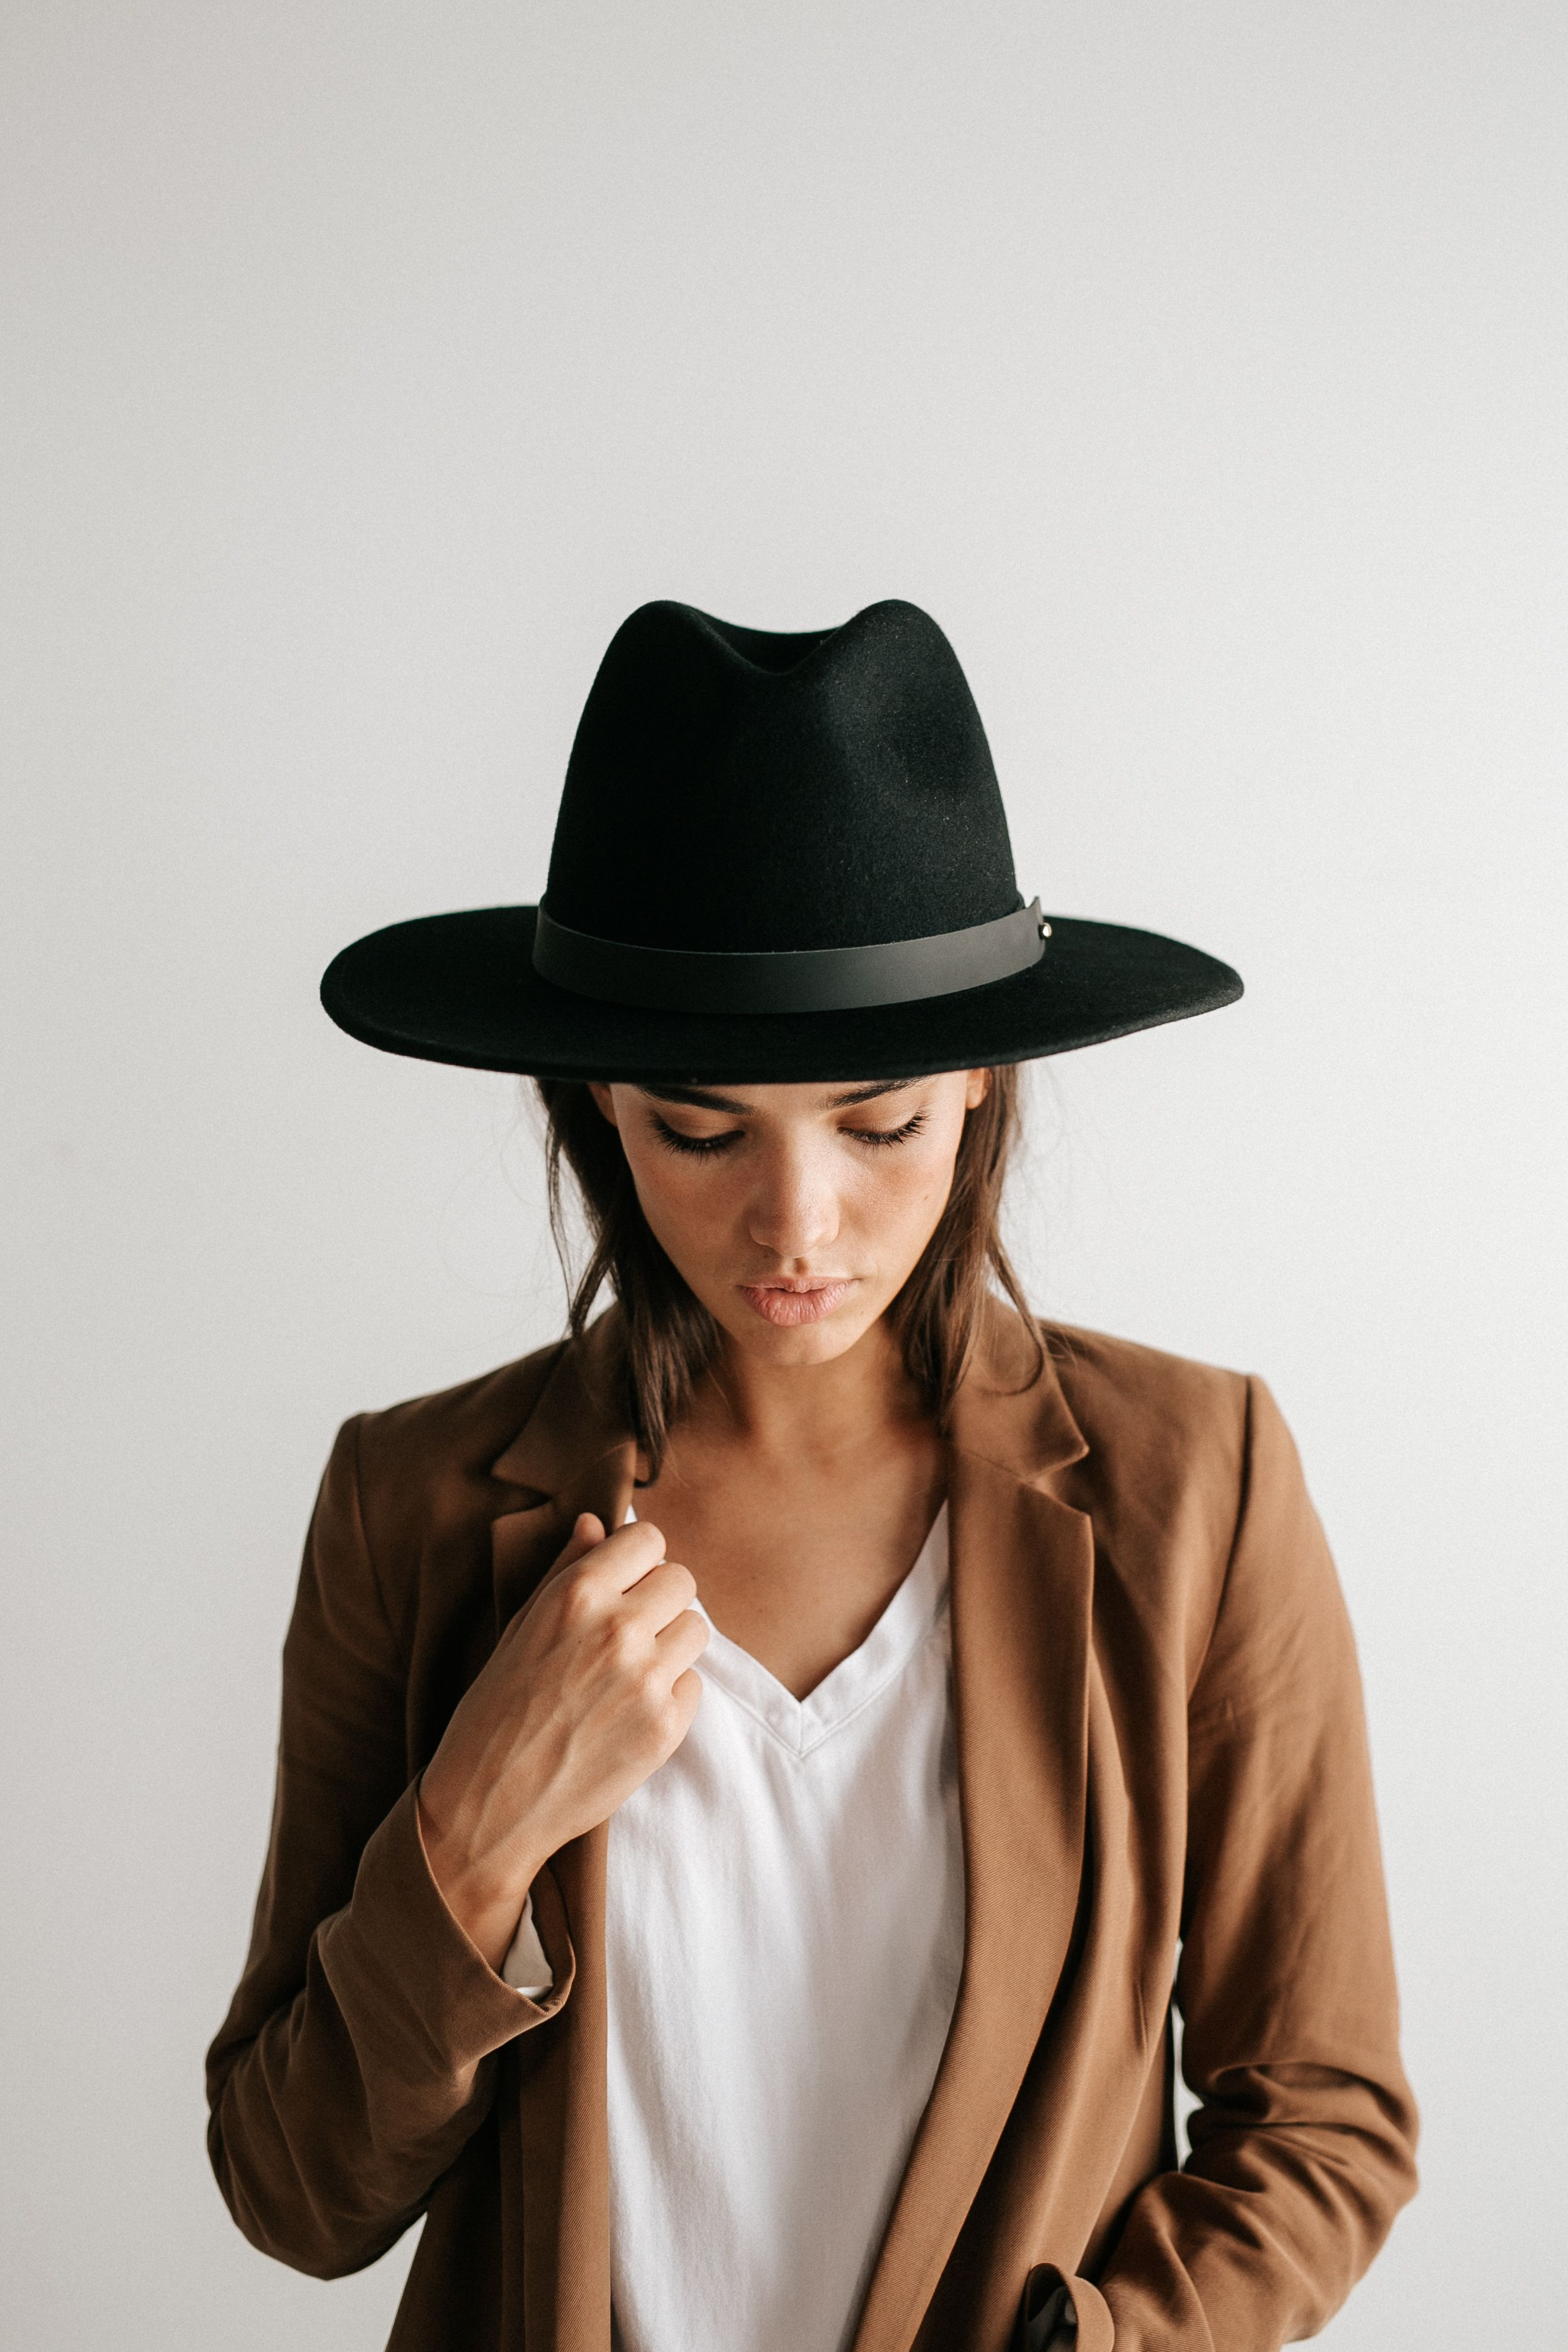 Wes Fedora Black In 2021 Monroe Hat Outfits With Hats Women Hats Fashion